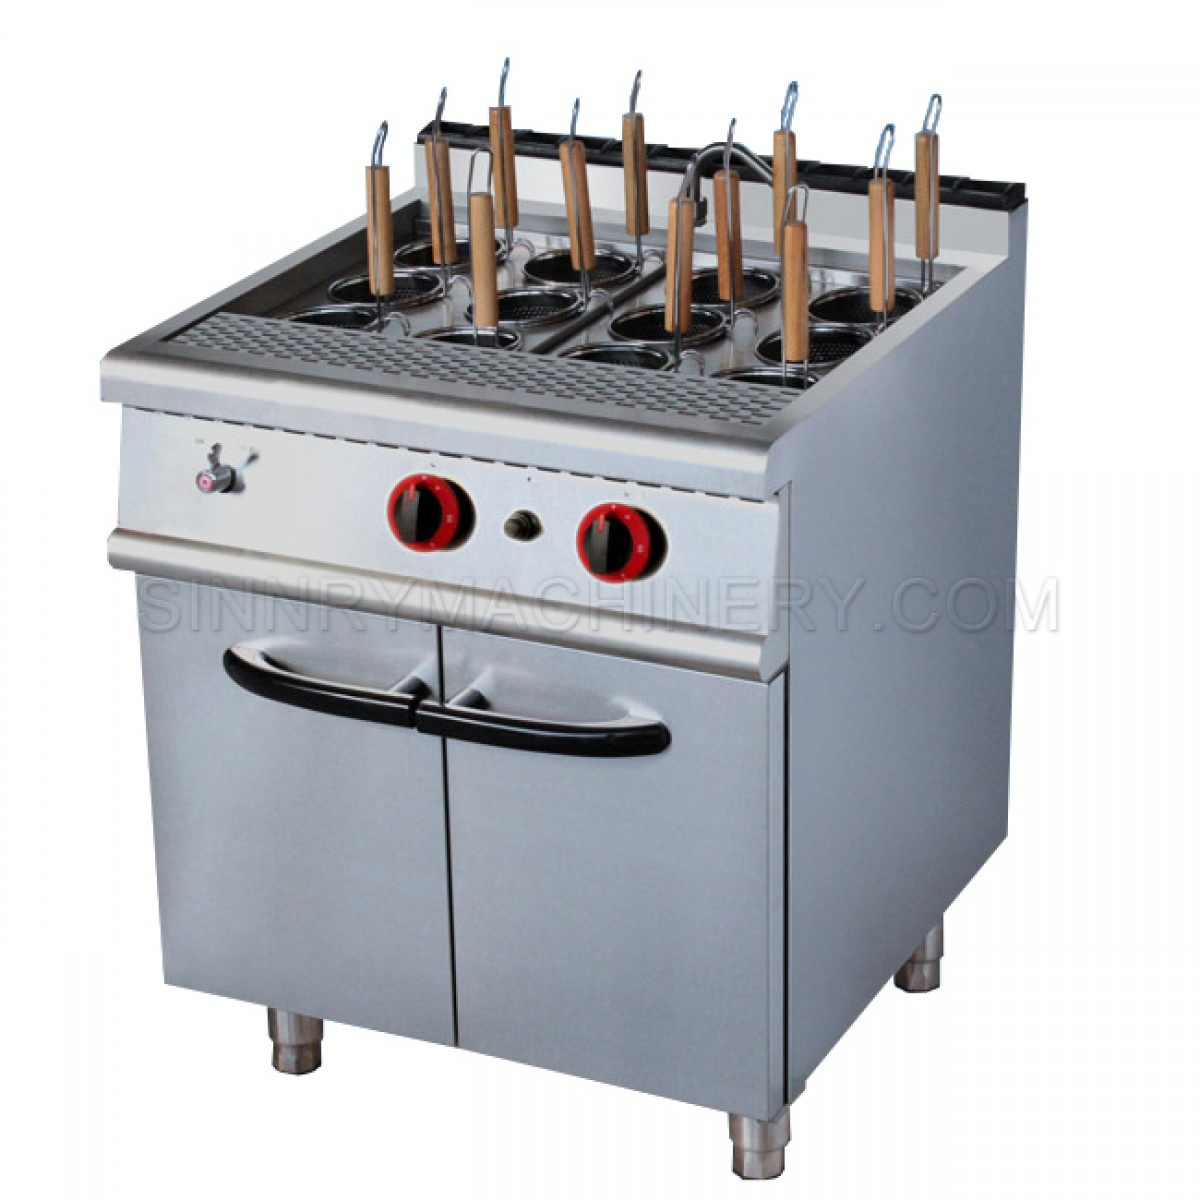 Pasta Cooker with Cabinet - Gas, 22 KW, 12 Baskets, SN-CRG203A